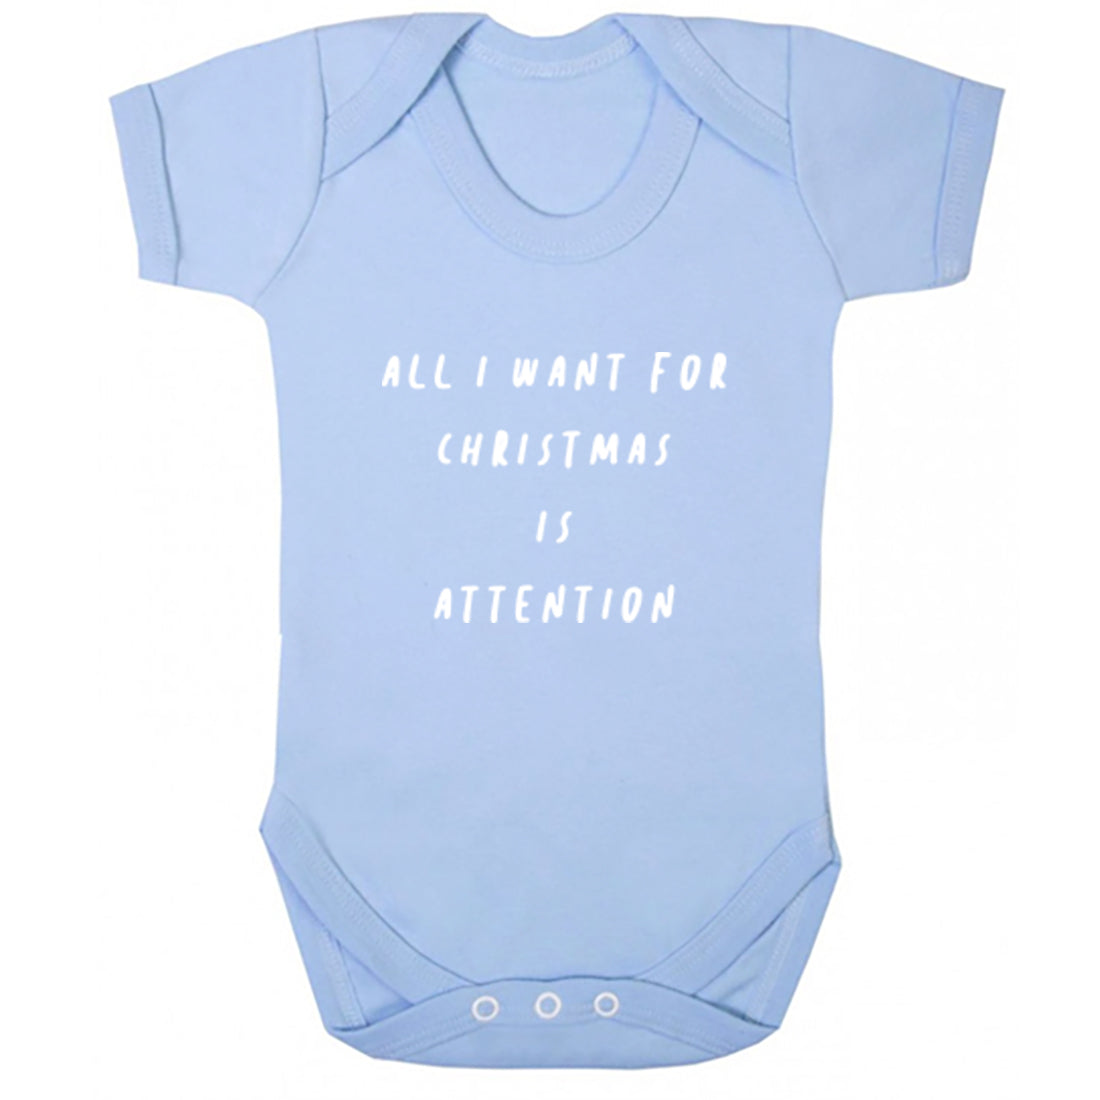 All I Want For Christmas Is Attention Baby Vest K2468 - Illustrated Identity Ltd.